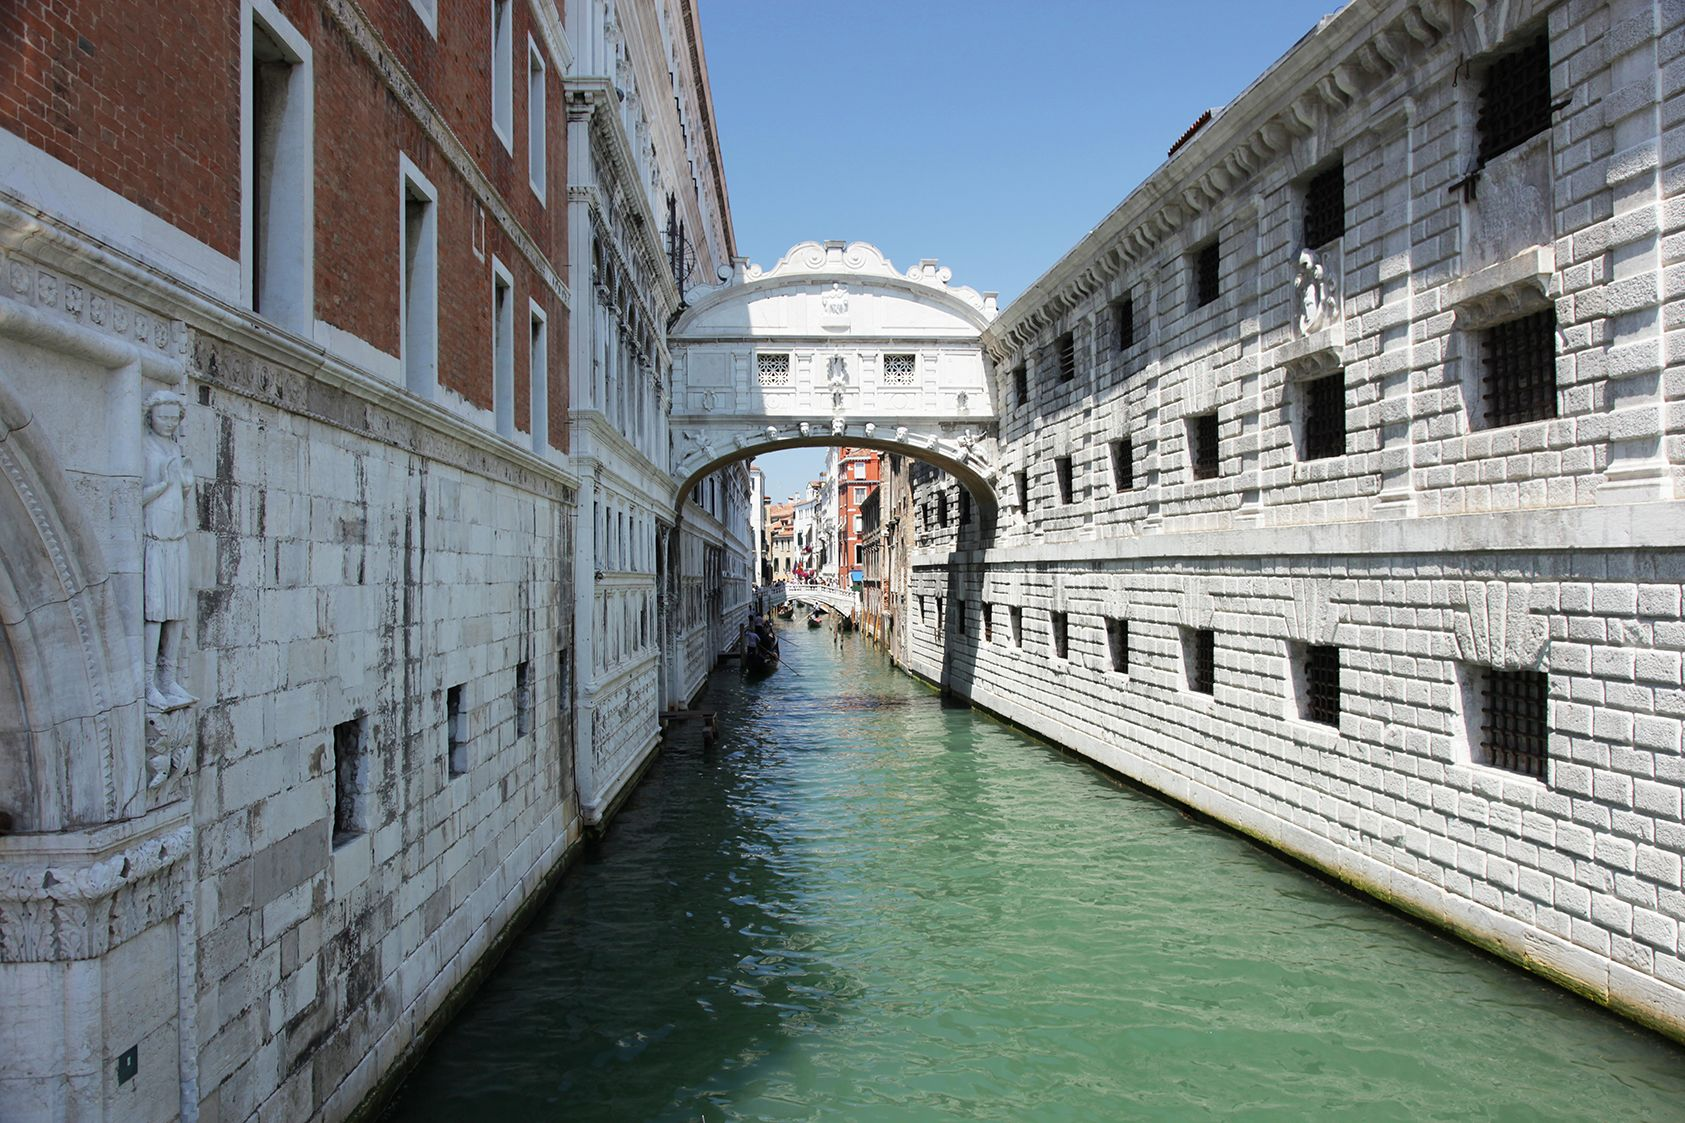 Bridge-of-Sighs_Gondola-wide.jpg